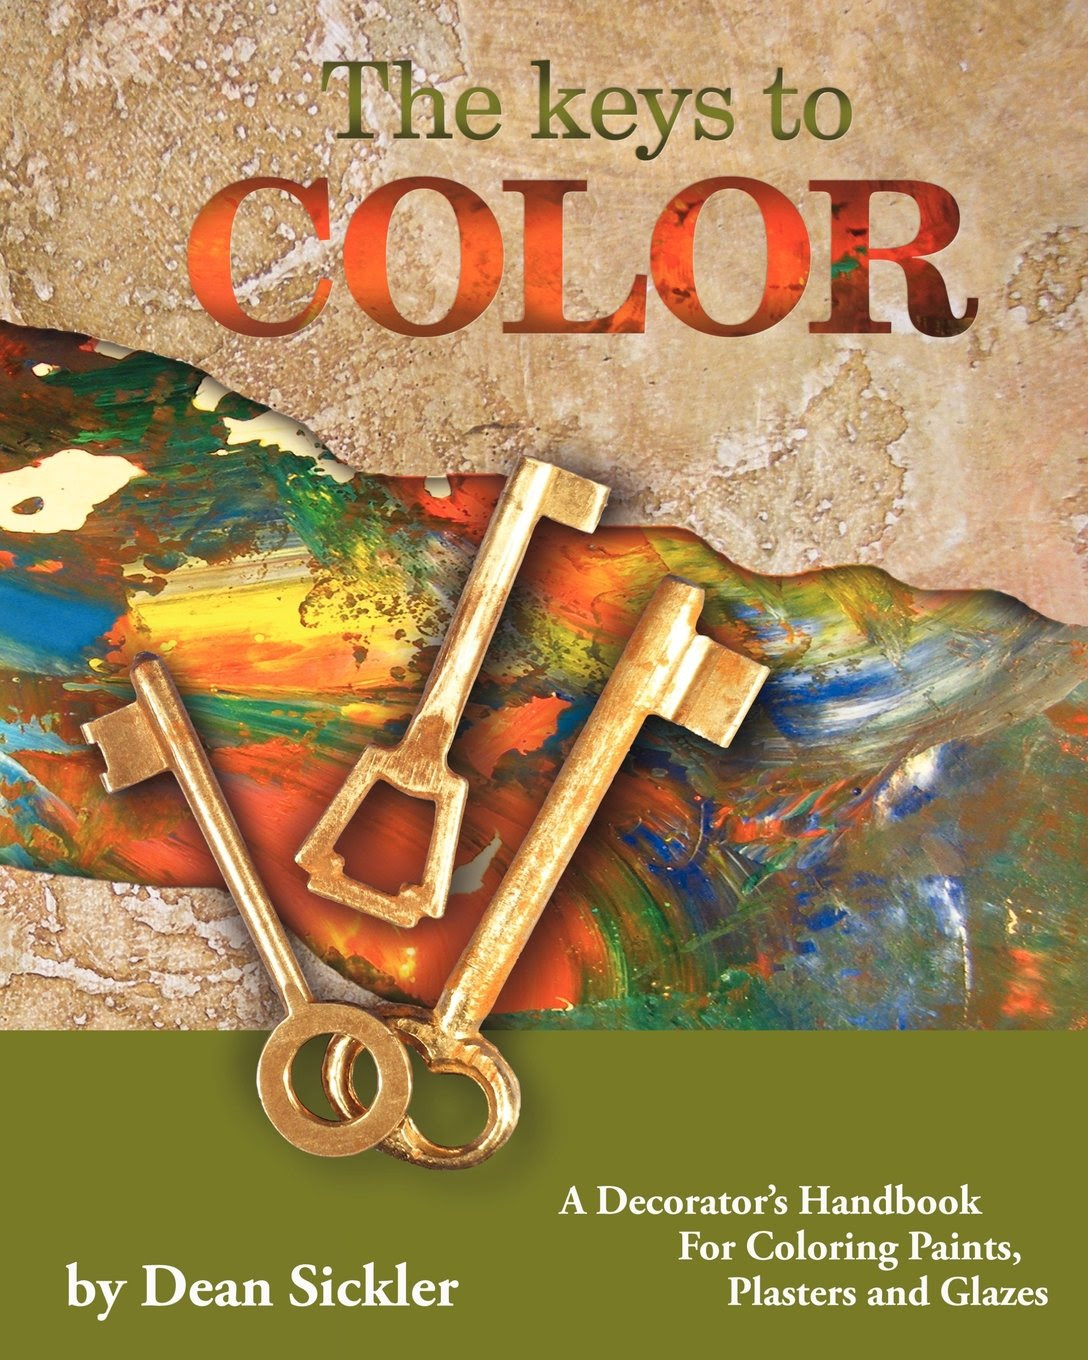 The Keys to Color by Dean Sickler